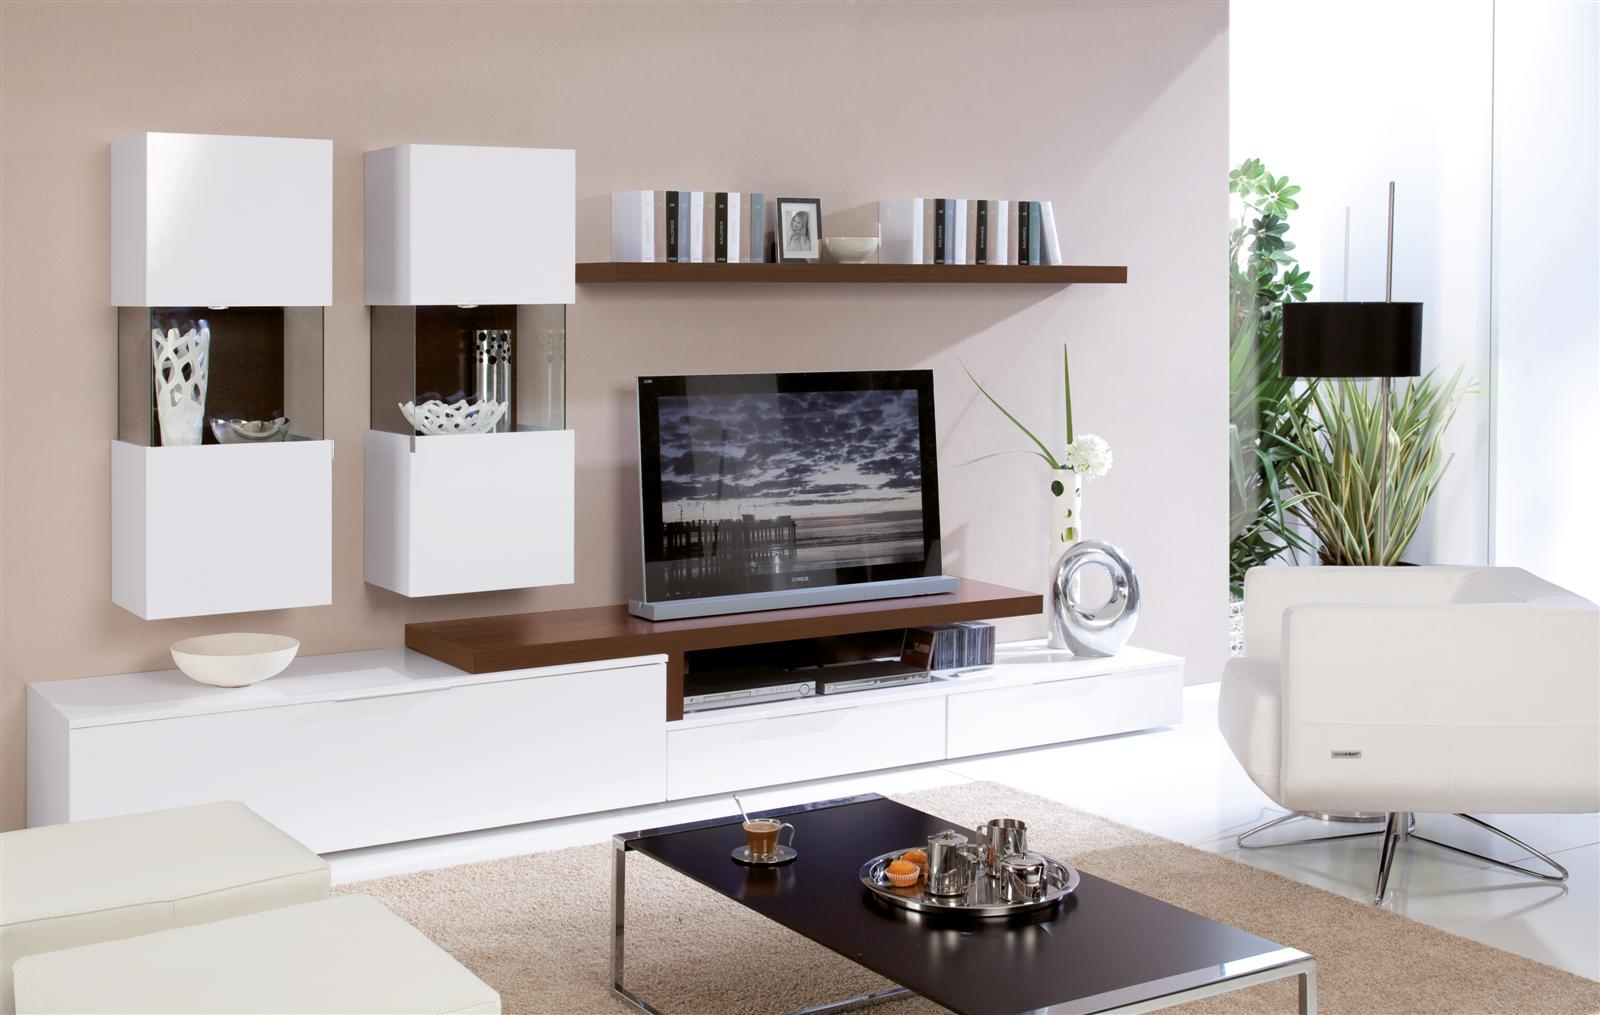 20 modern tv unit design ideas for bedroom living room with pictures - Living room tv wall design ...